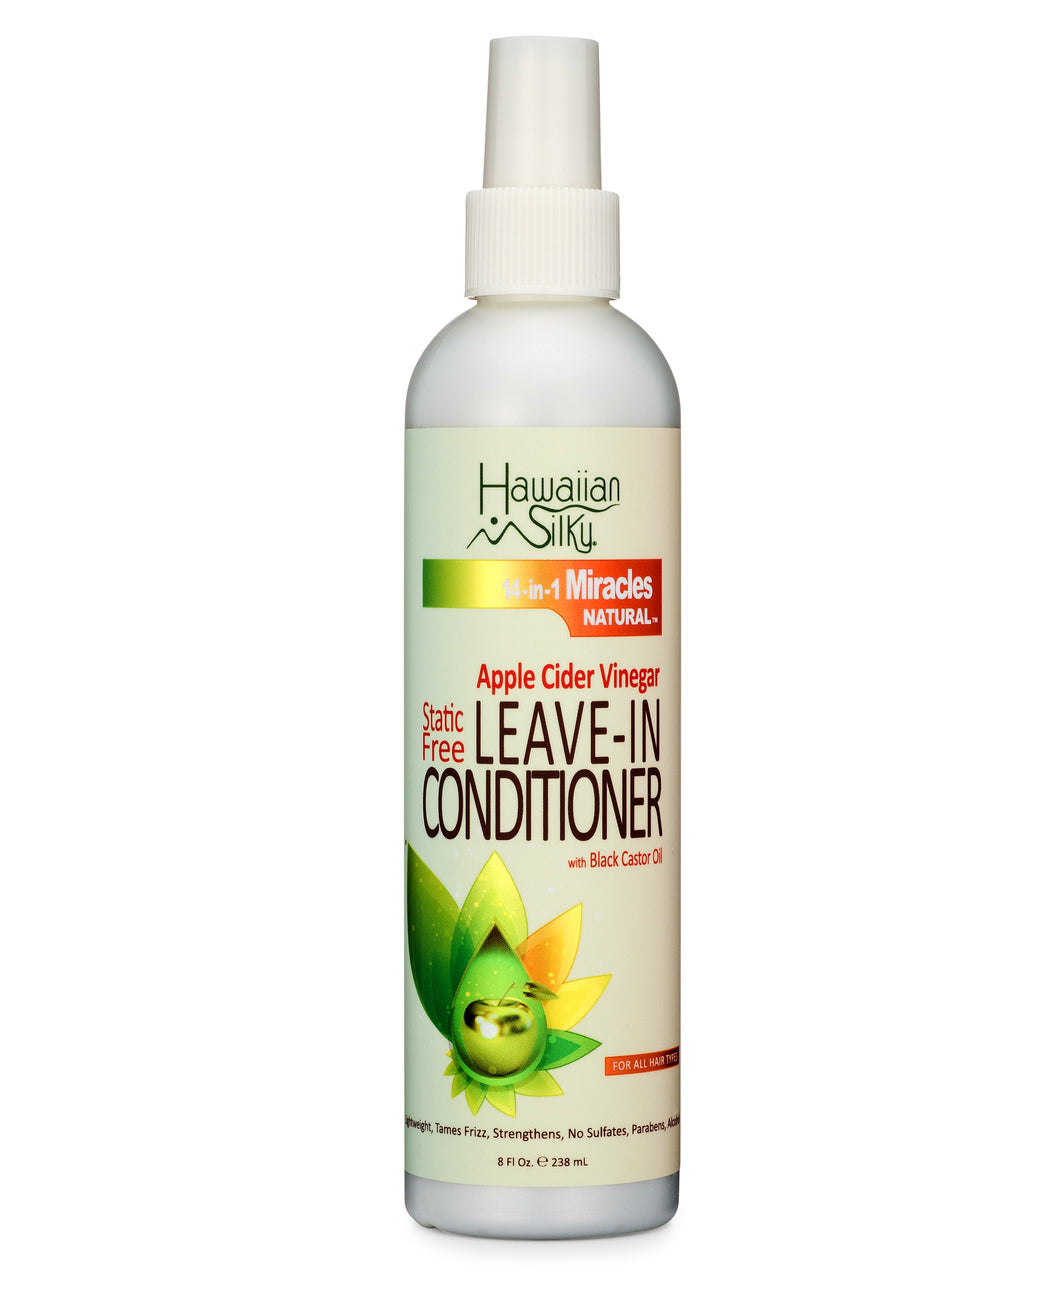 Hawaiian Silky 14-in-1 Miracles Natural Apple Cider Vinegar Static-Free Leave-In Conditioner